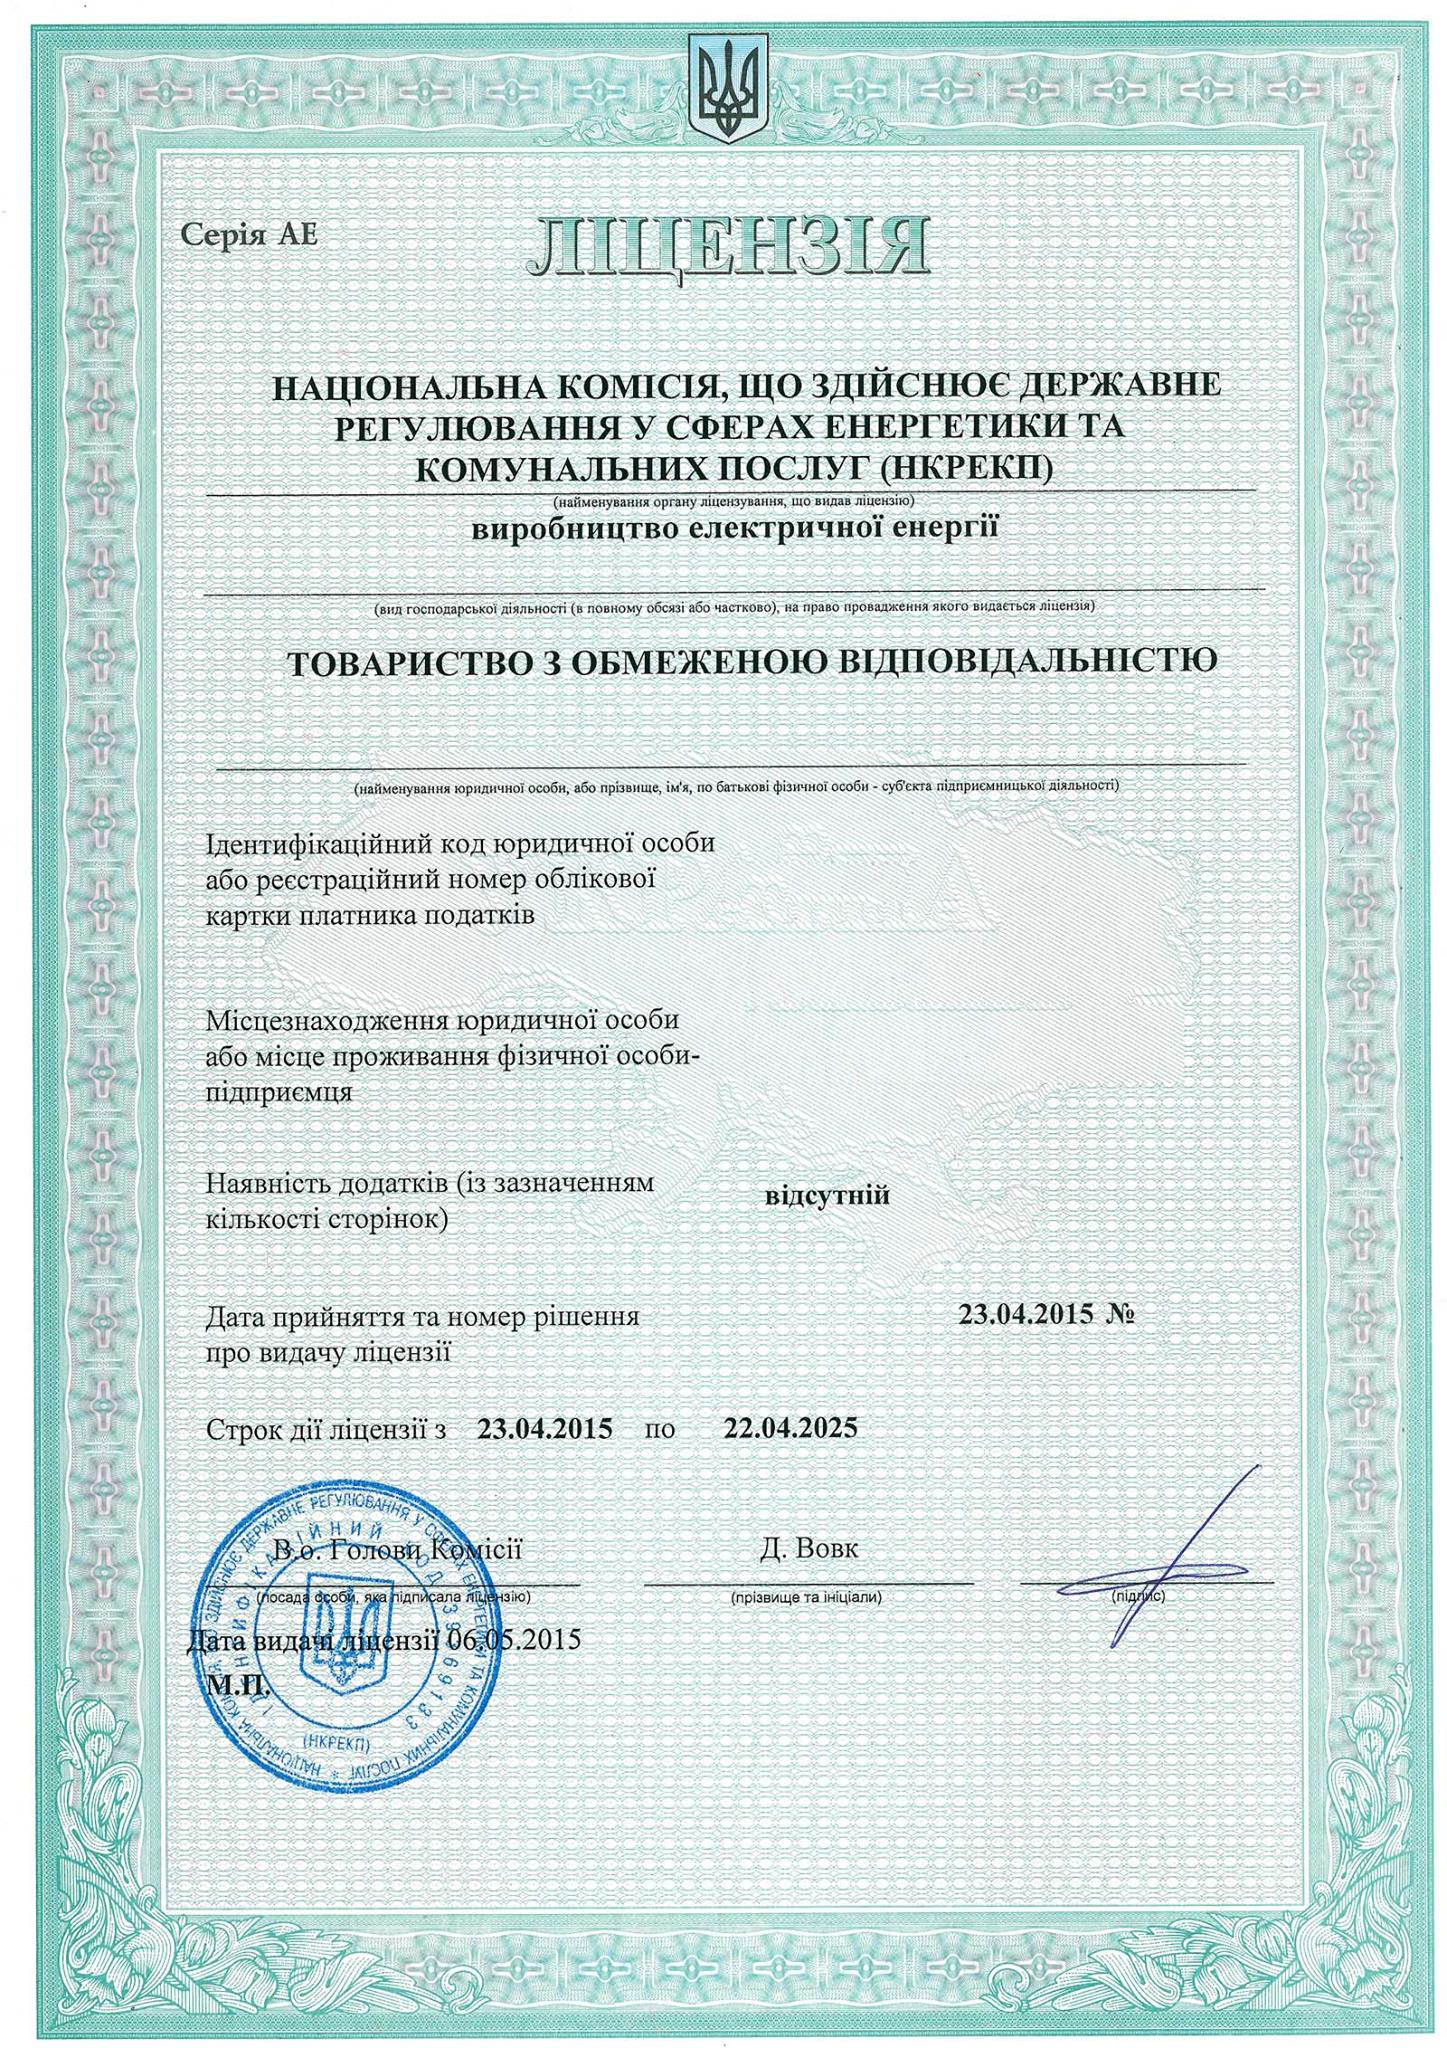 obtain a license in the electric power industry